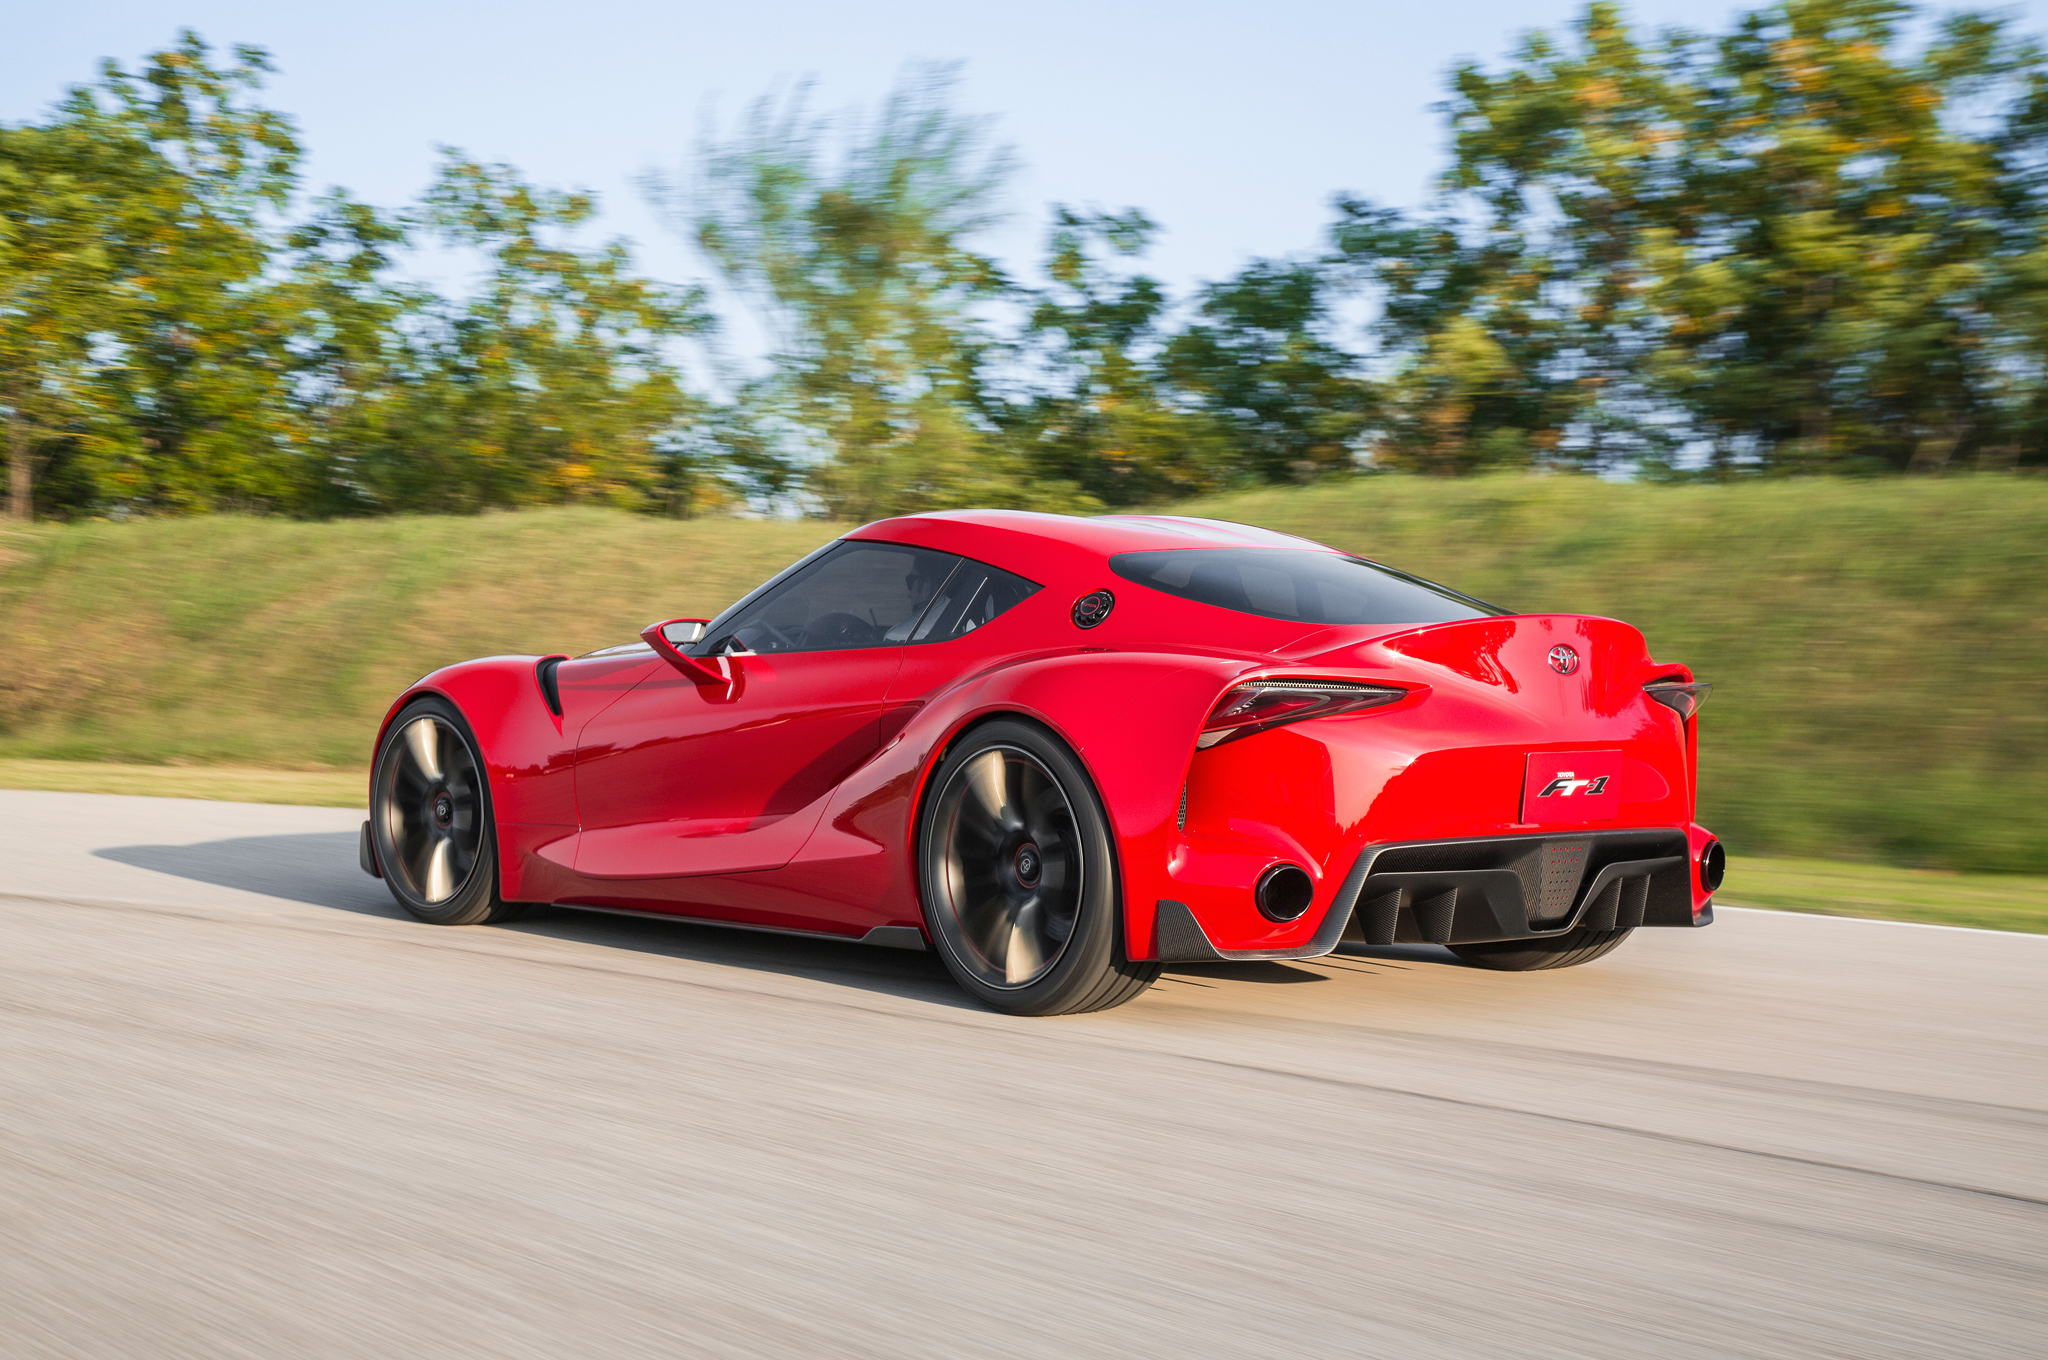 2018 Toyota Supra Price Specs Interior Engine Release Date   2017 - 2018 Best Cars Reviews